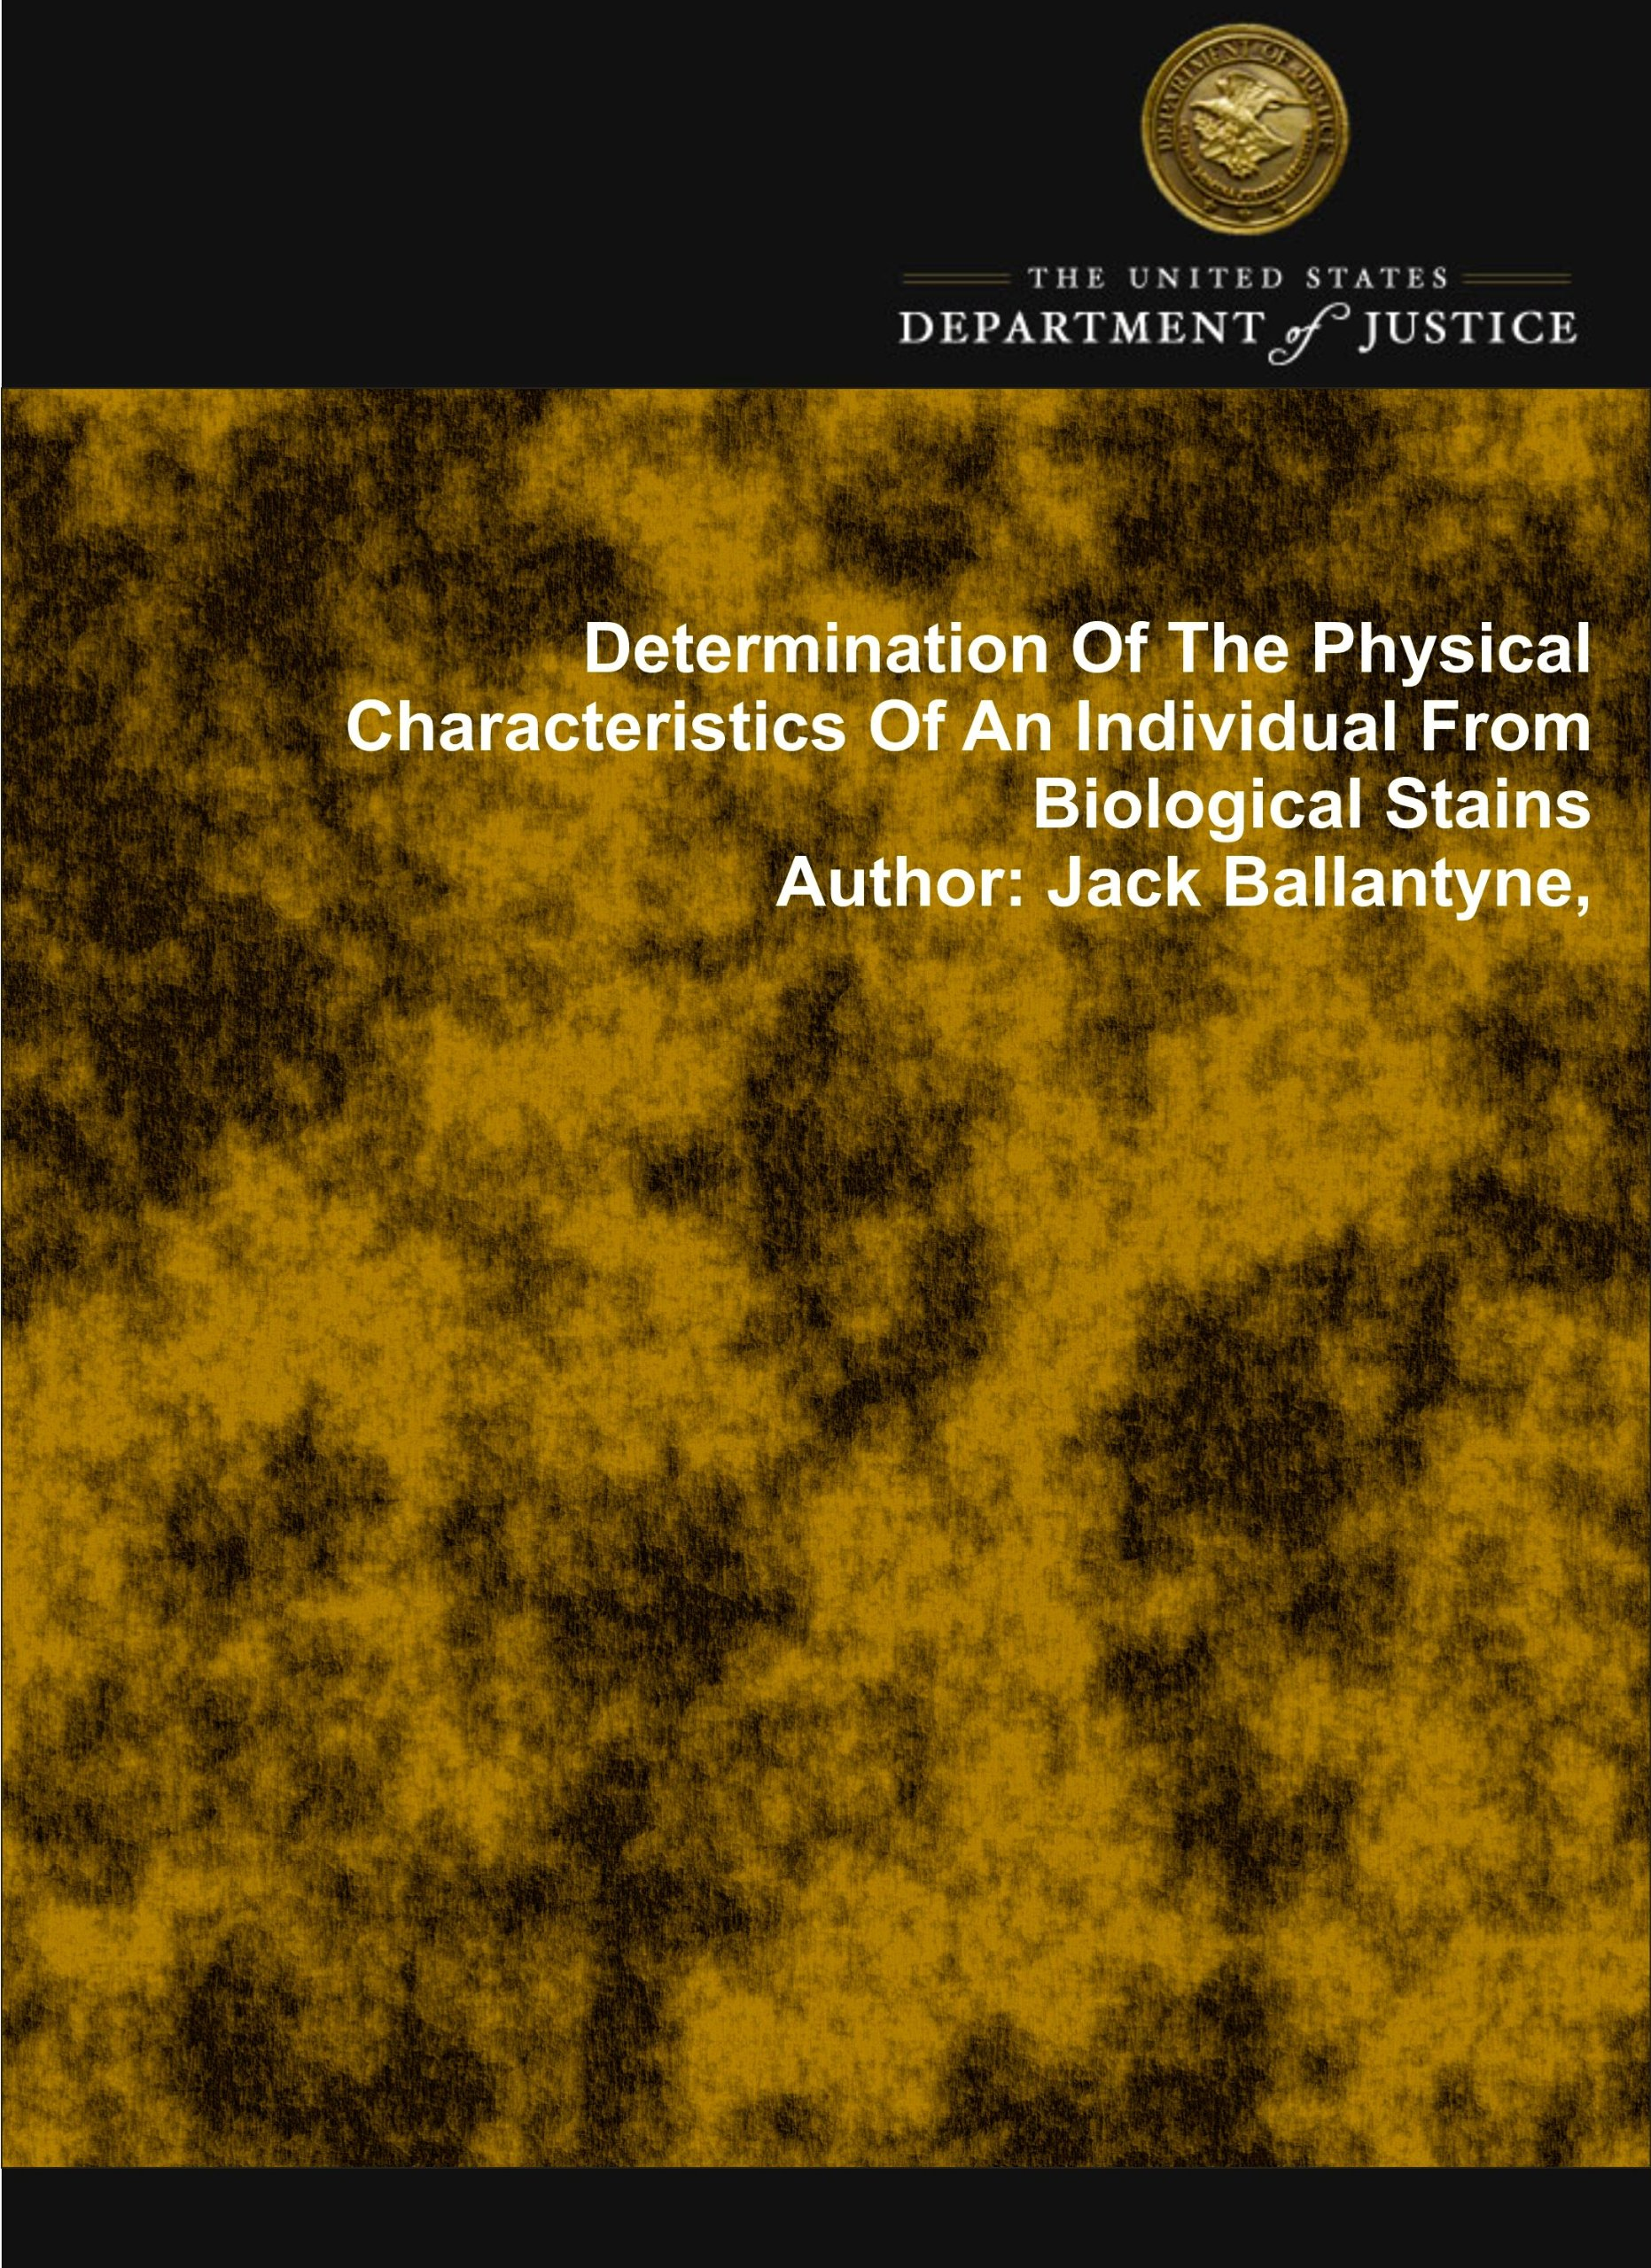 Download Determination of the Physical Characteristics of an Individual From Biological Stains, NIJ-Sponsored, January 2007, NCJ 223978 ebook